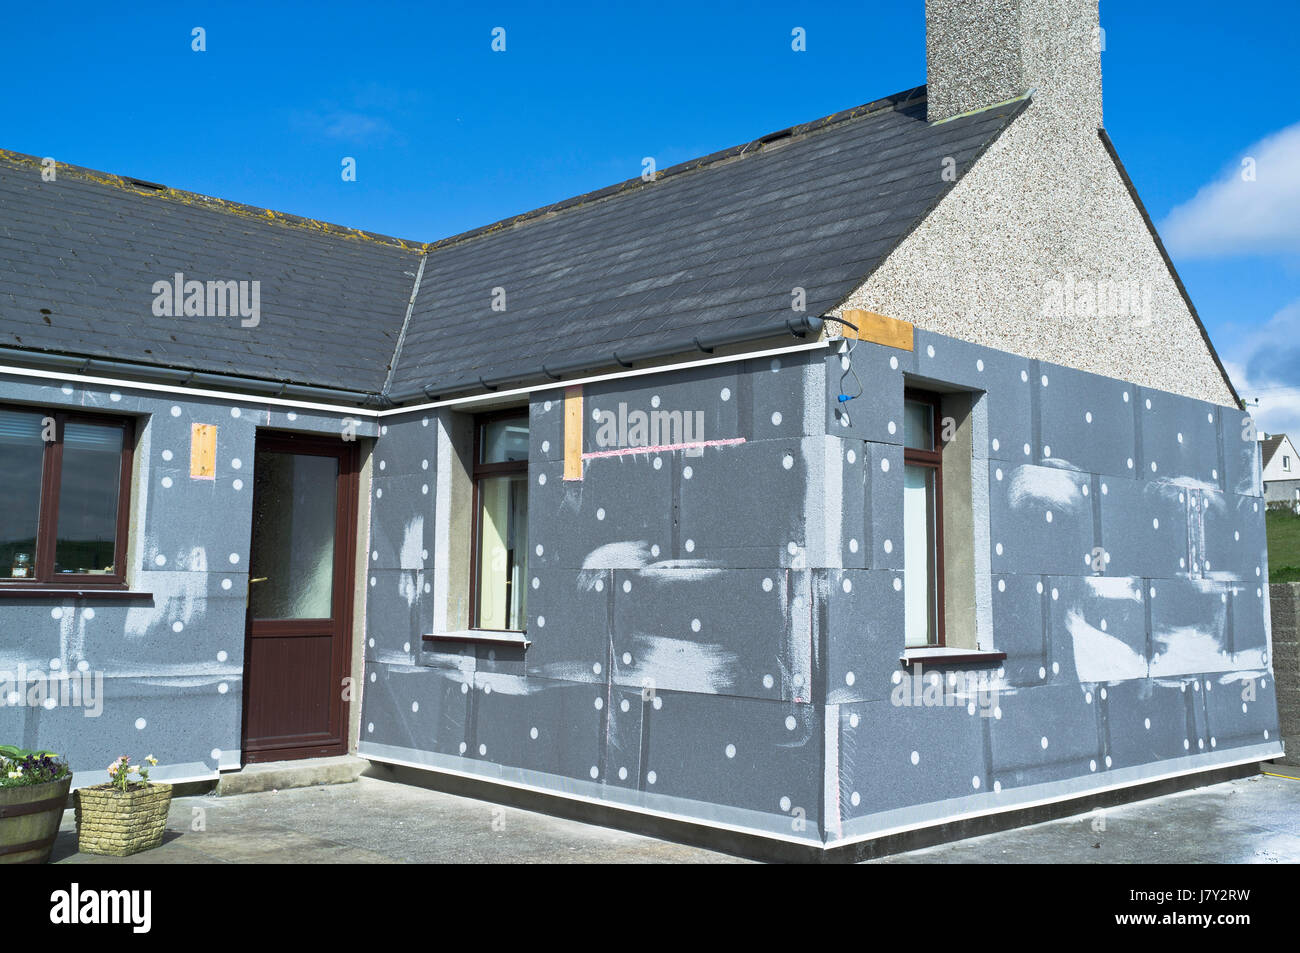 Wall insulation heating building house insulation uk external wall stock photo 142580477 alamy for What type of insulation for exterior walls